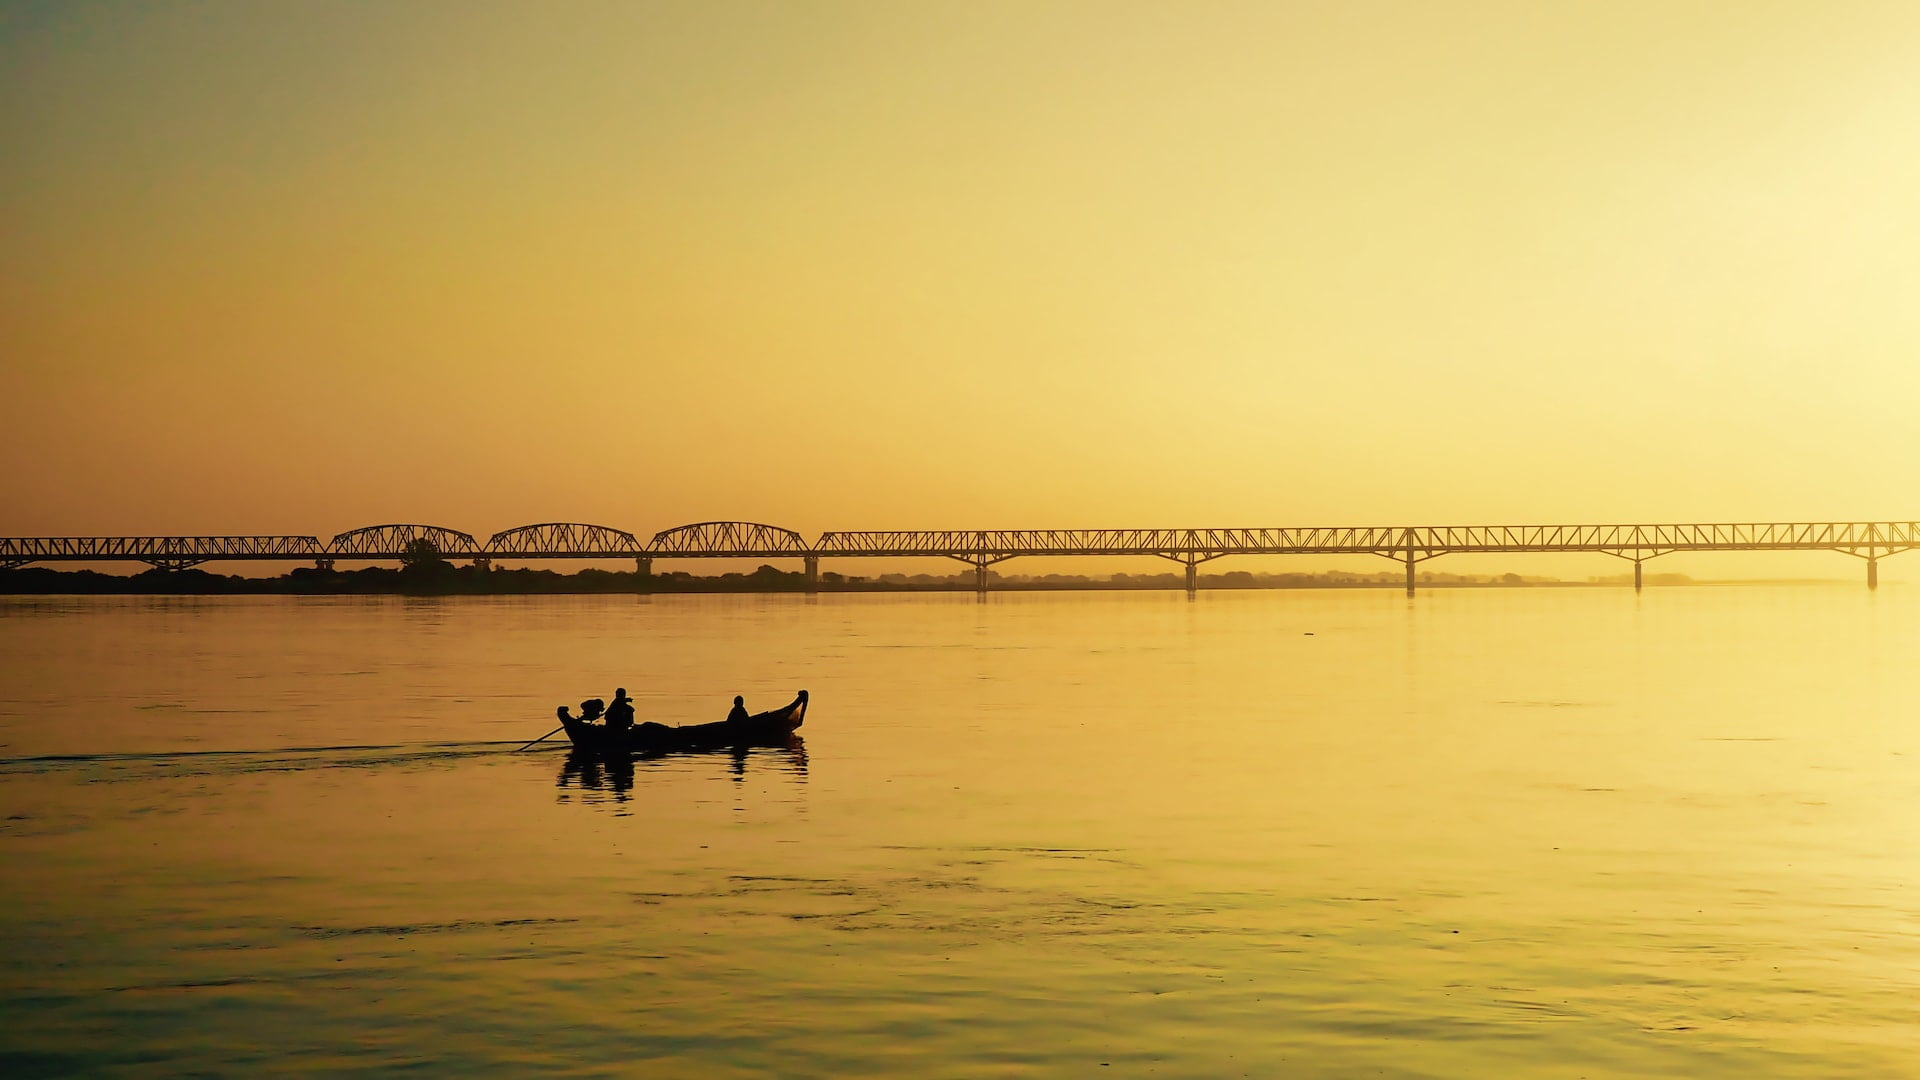 A small boat and a bridge are silhouetted against a yellow background of the sky and river